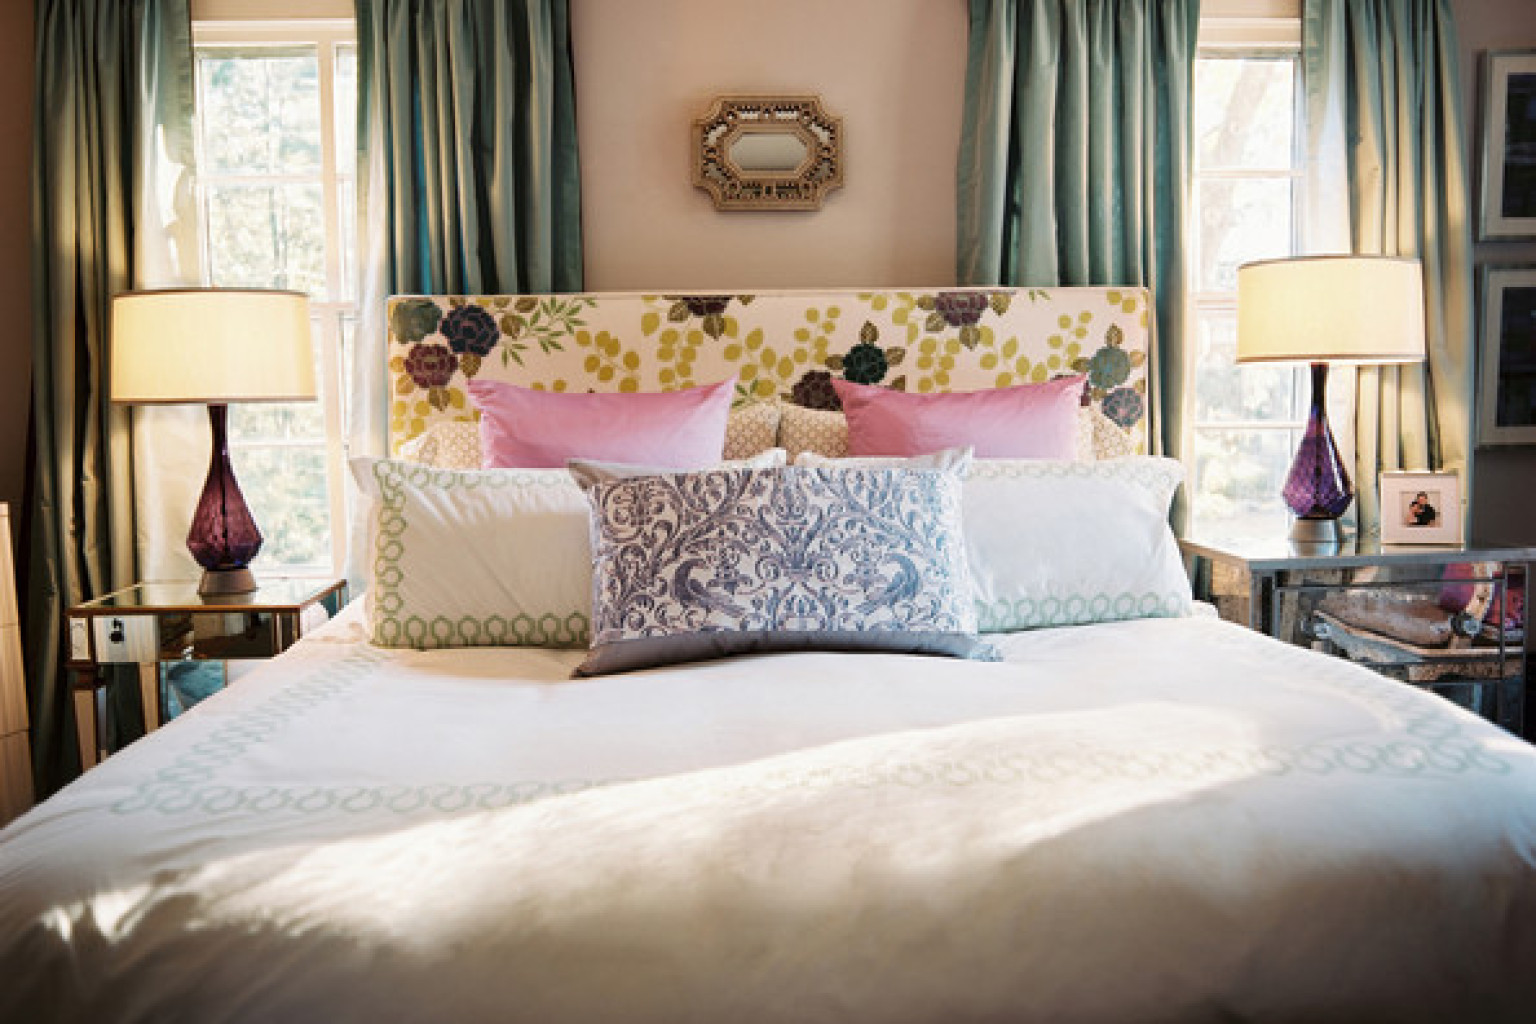 8 romantic bedroom ideas from lonny that will totally get you in the mood photos huffpost Master bedroom bed against window